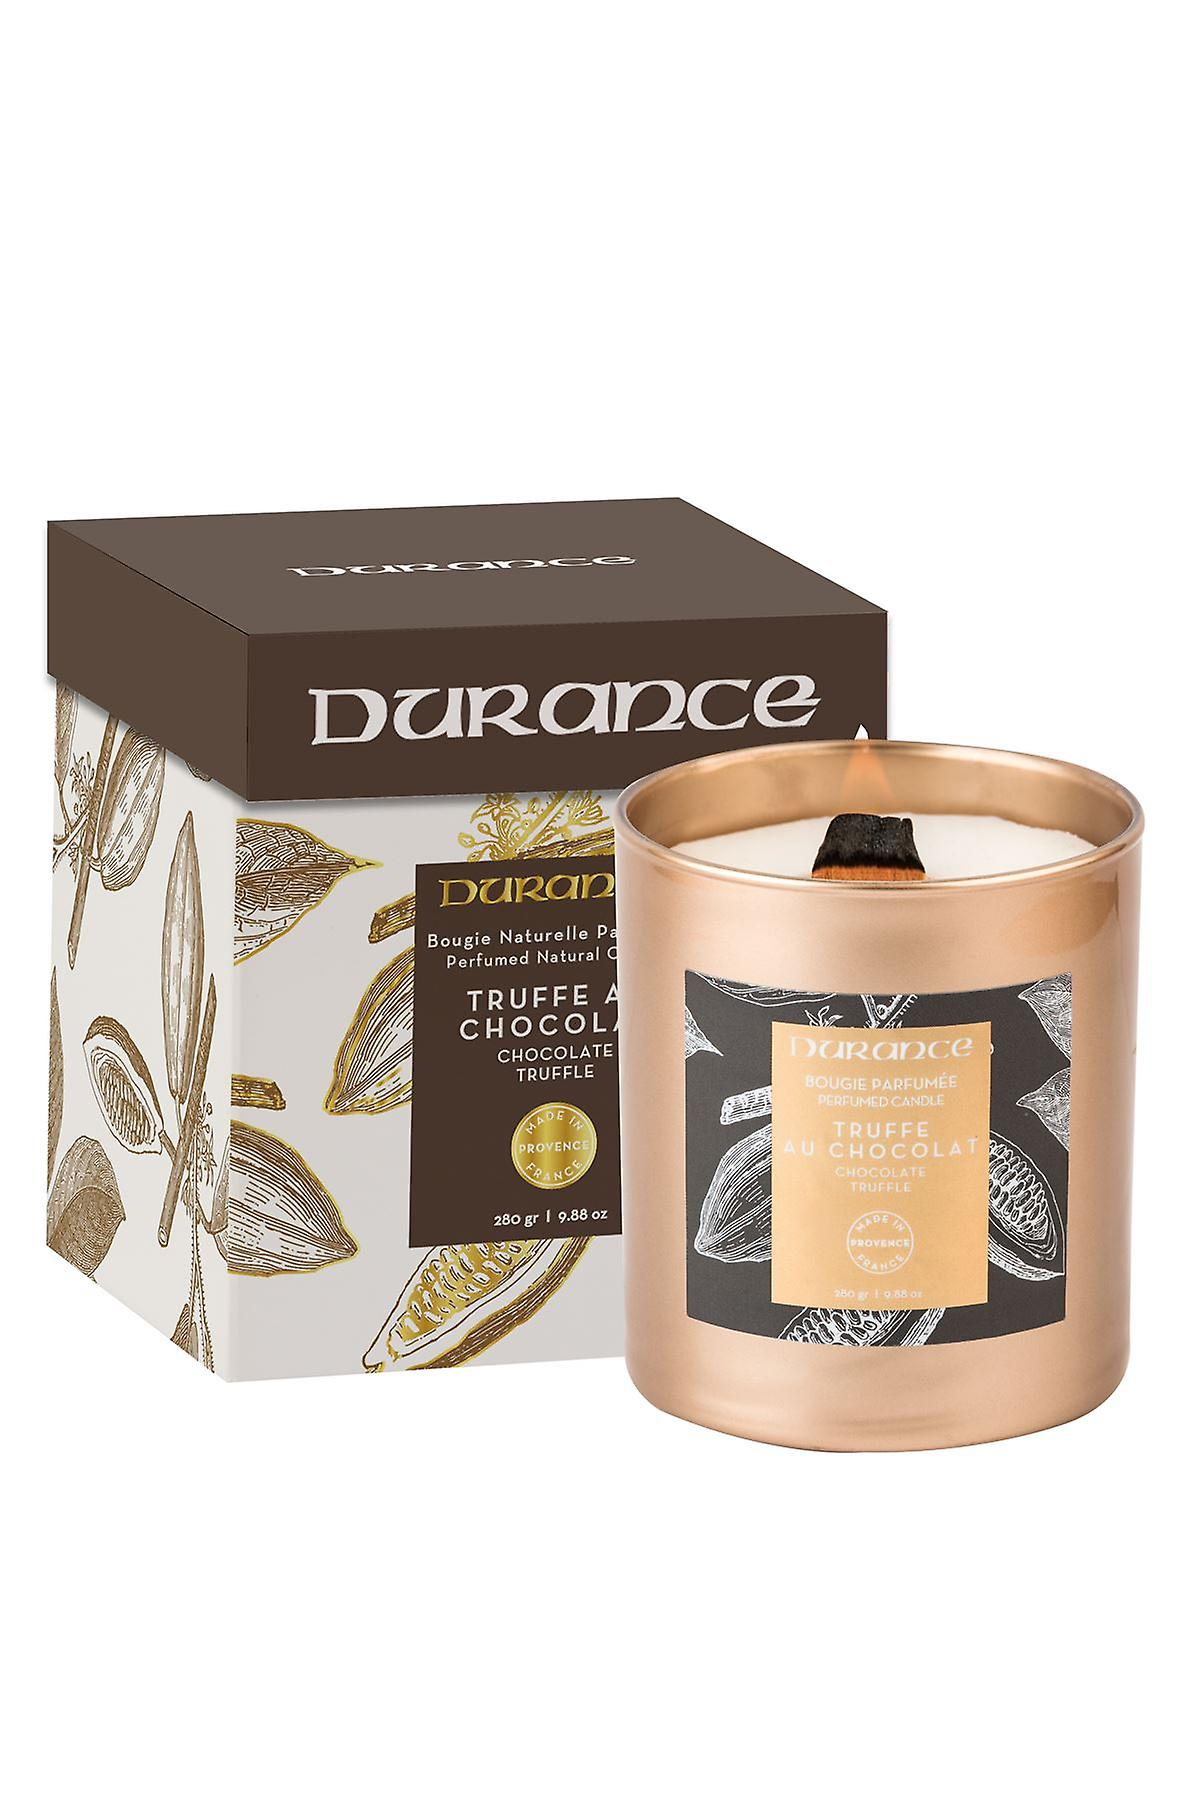 Durance Perfumed Wooden Wick Candle 280g - Chocolate Truffle